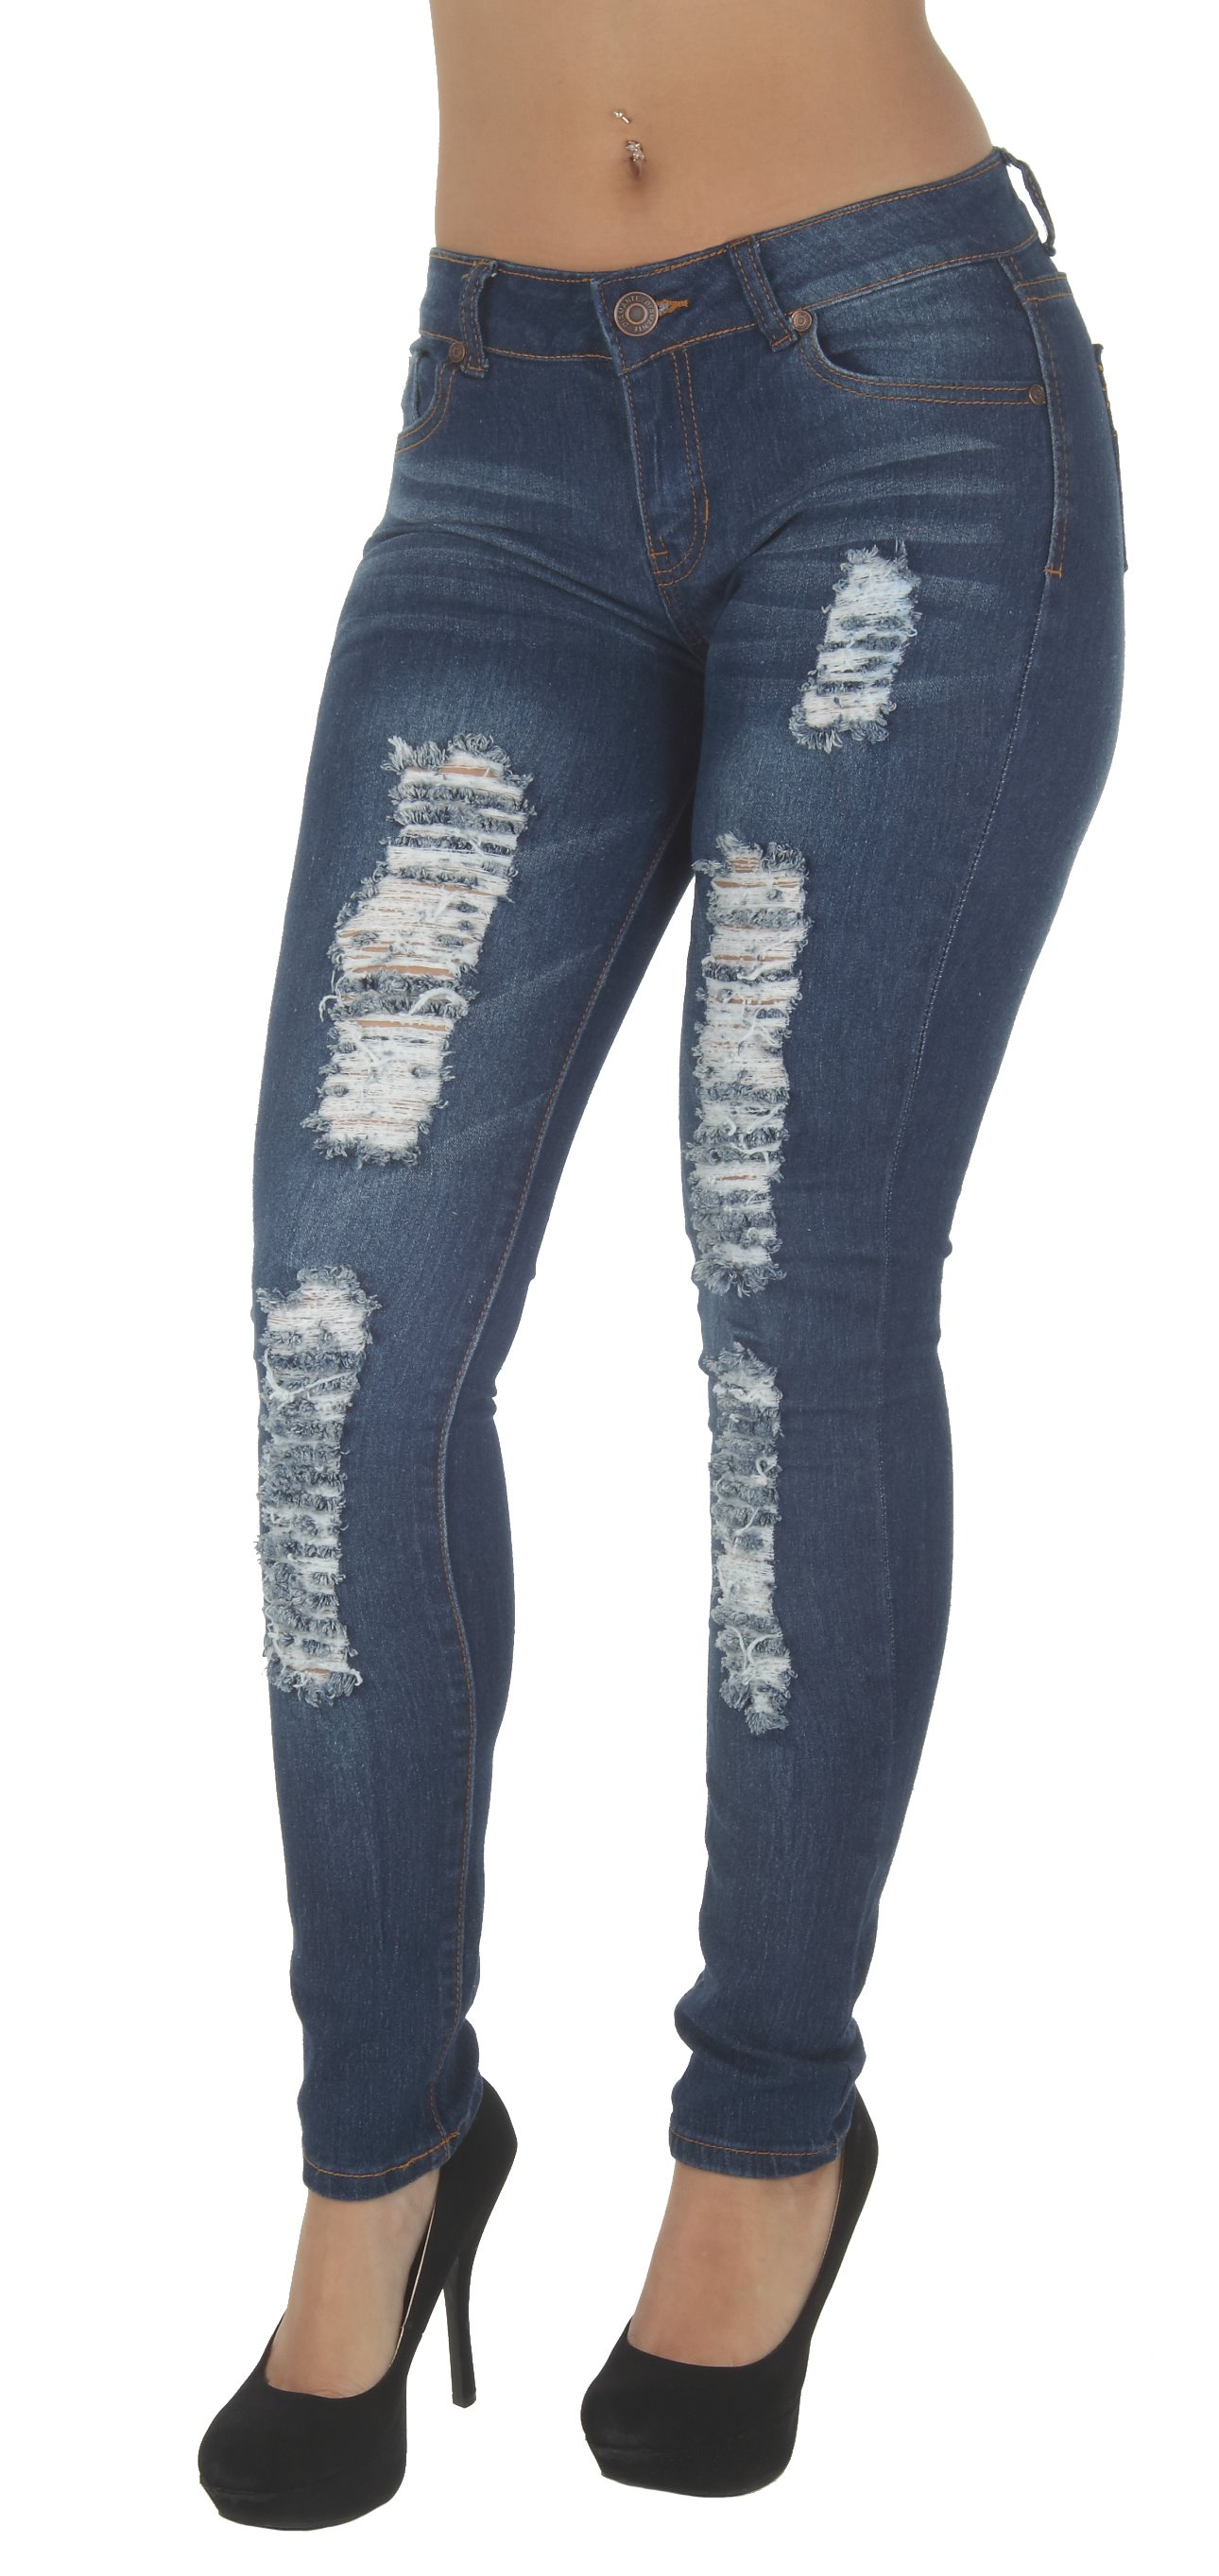 CH250R-P - Plus Size, Classic, Destroyed, Ripped Mid Waist, Skinny Jeans